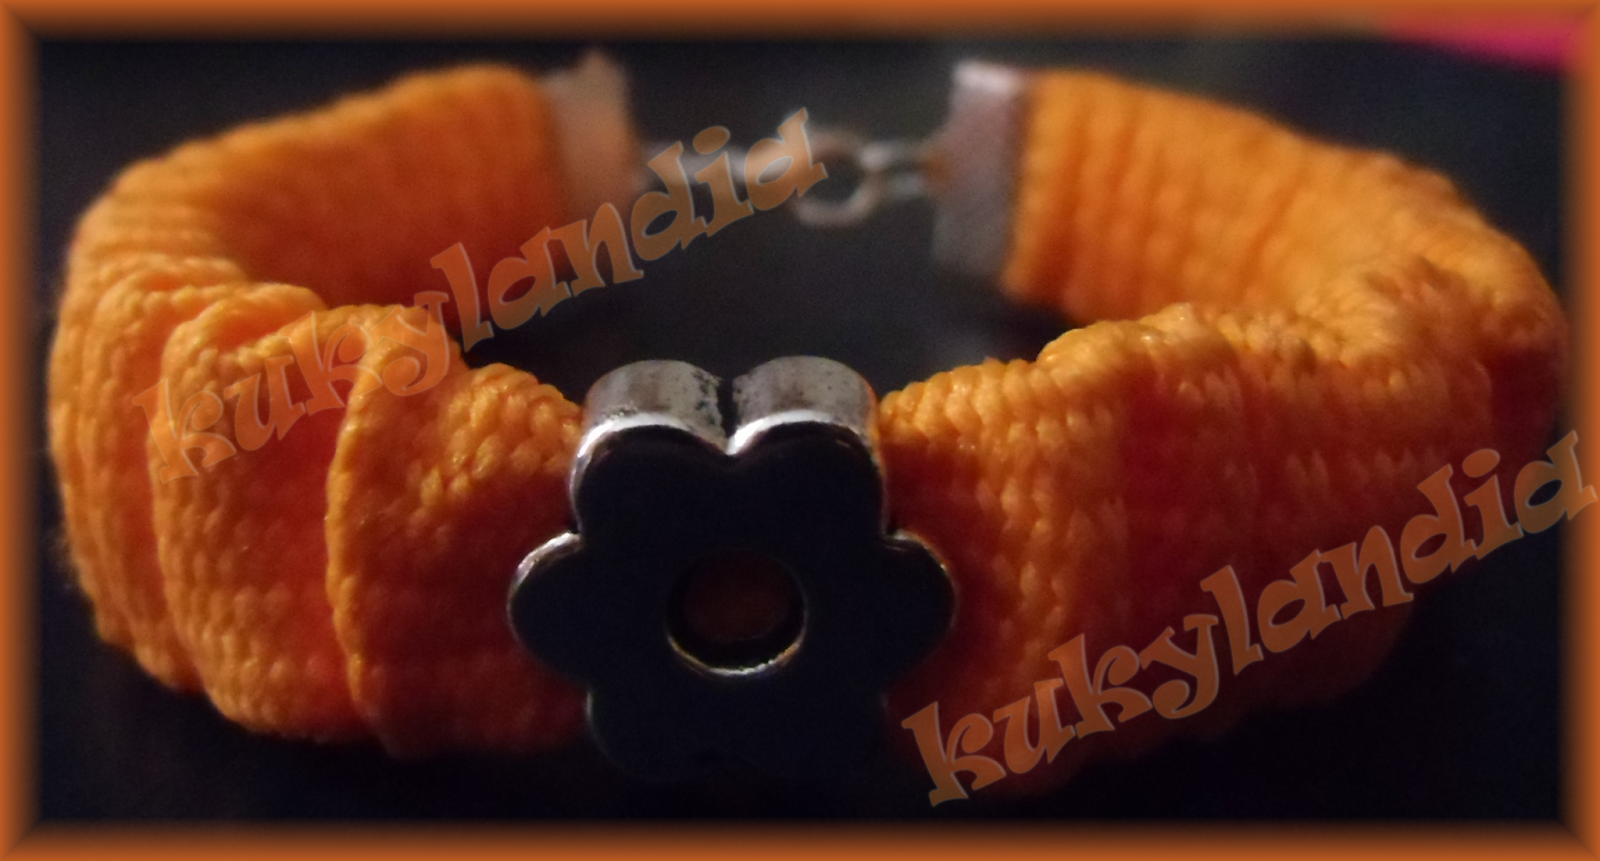 Pulsera de pliegues en color naranja.